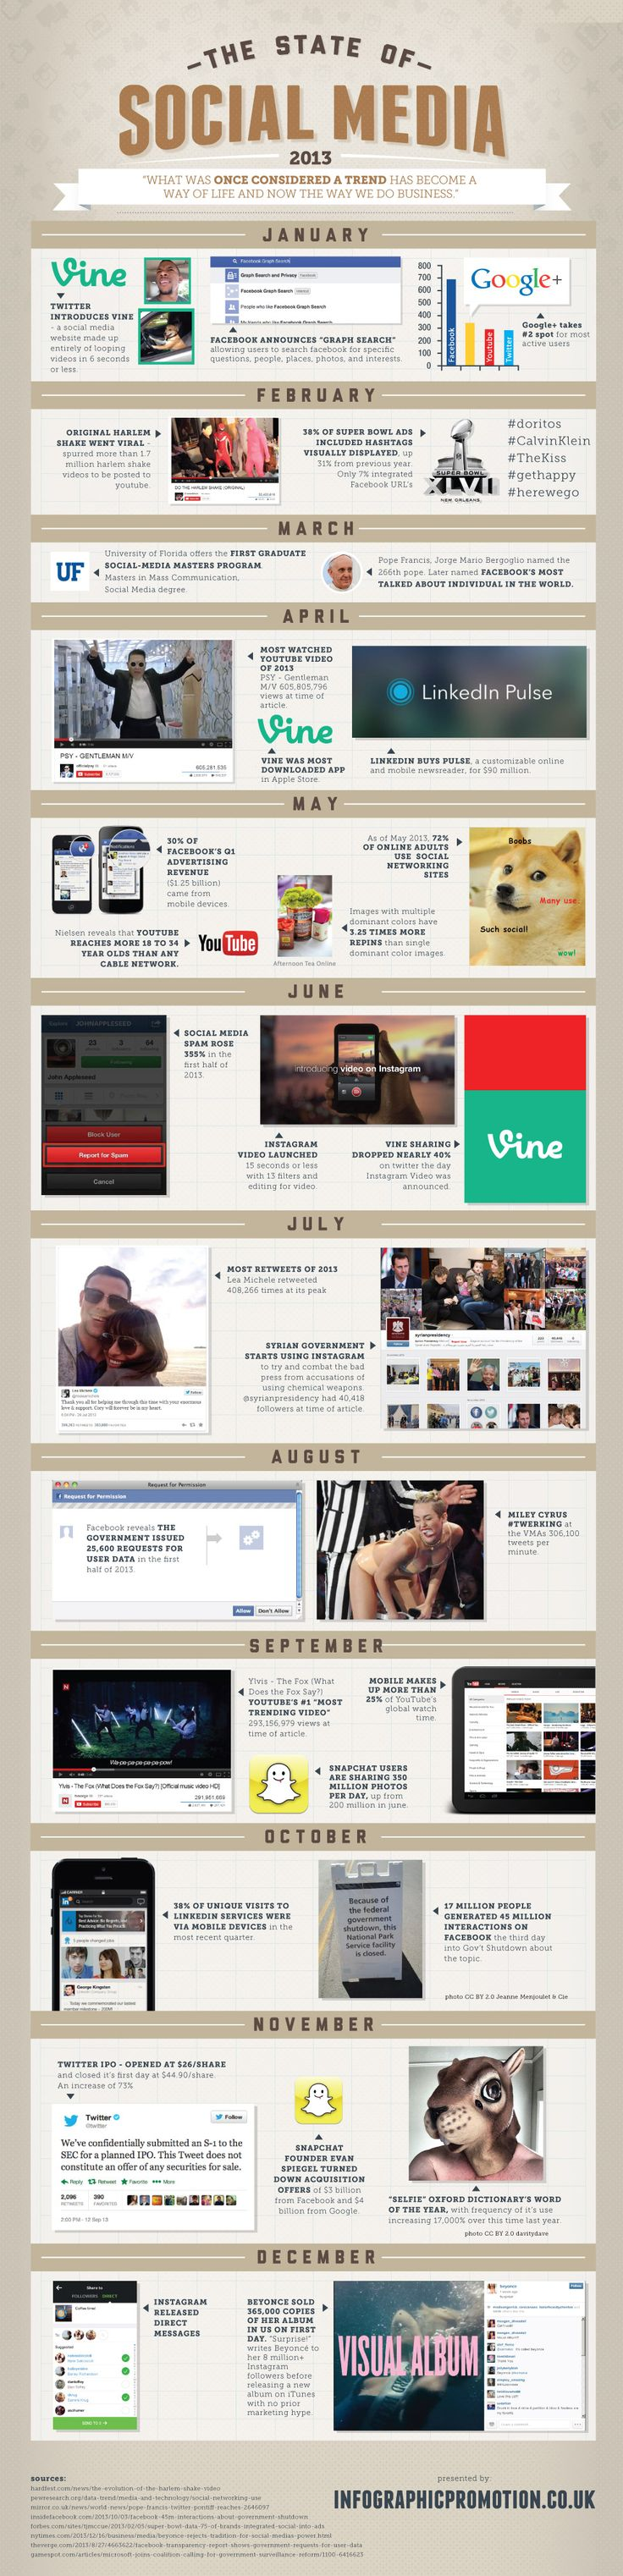 What were the highlights and lowlights in social media last year? The following infographic captures the memorable events of 2013.